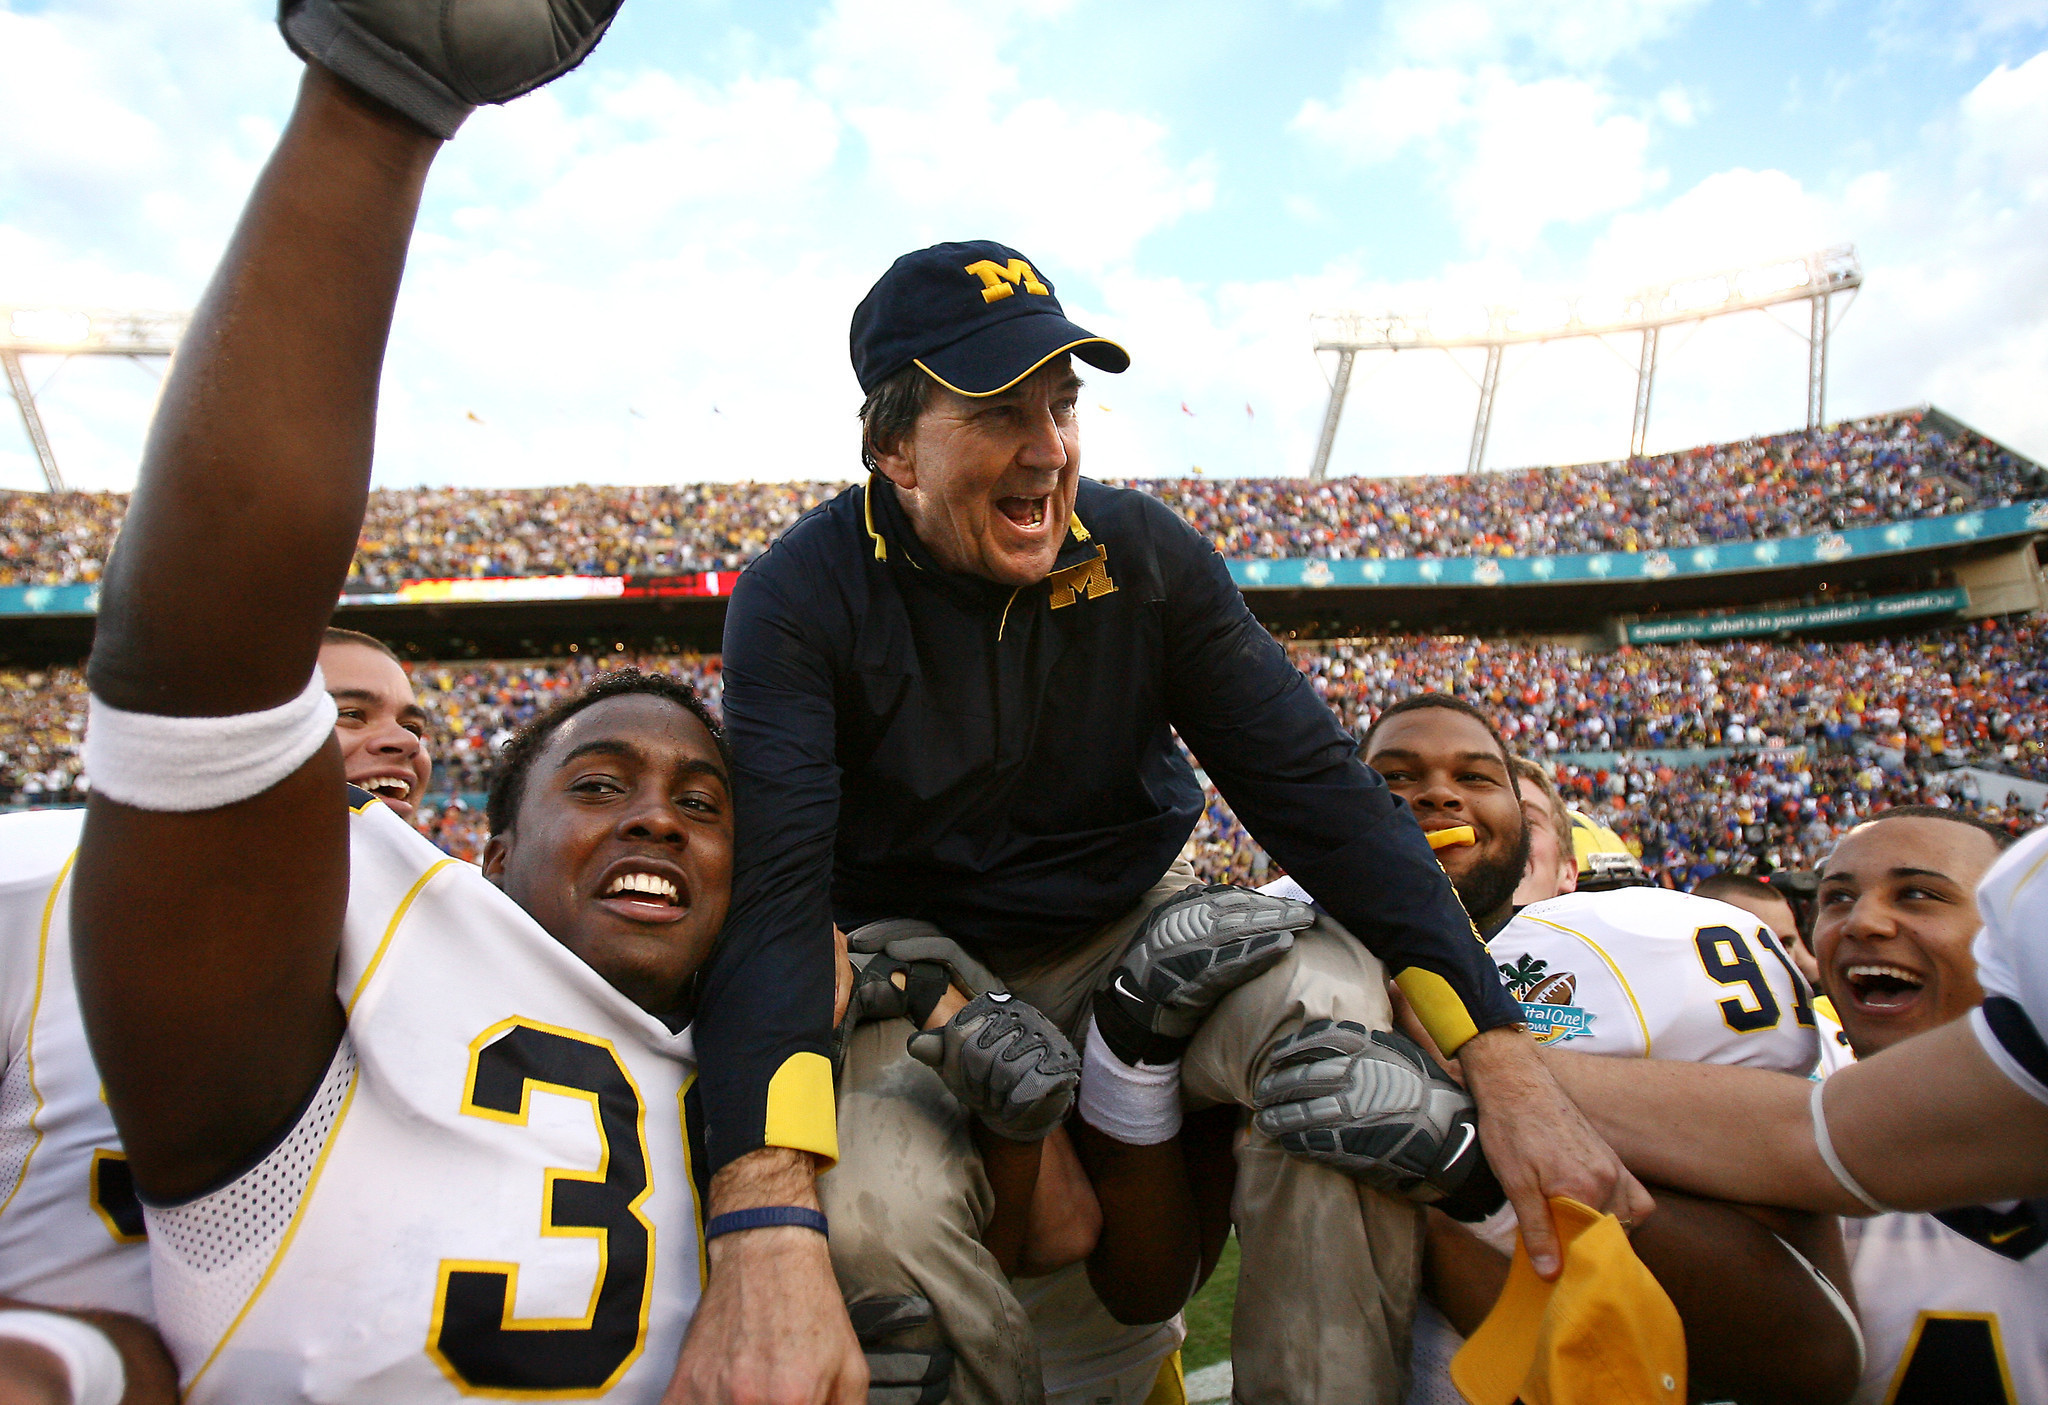 Os-lloyd-carr-stepping-down-from-cfp-selection-committee-20160819